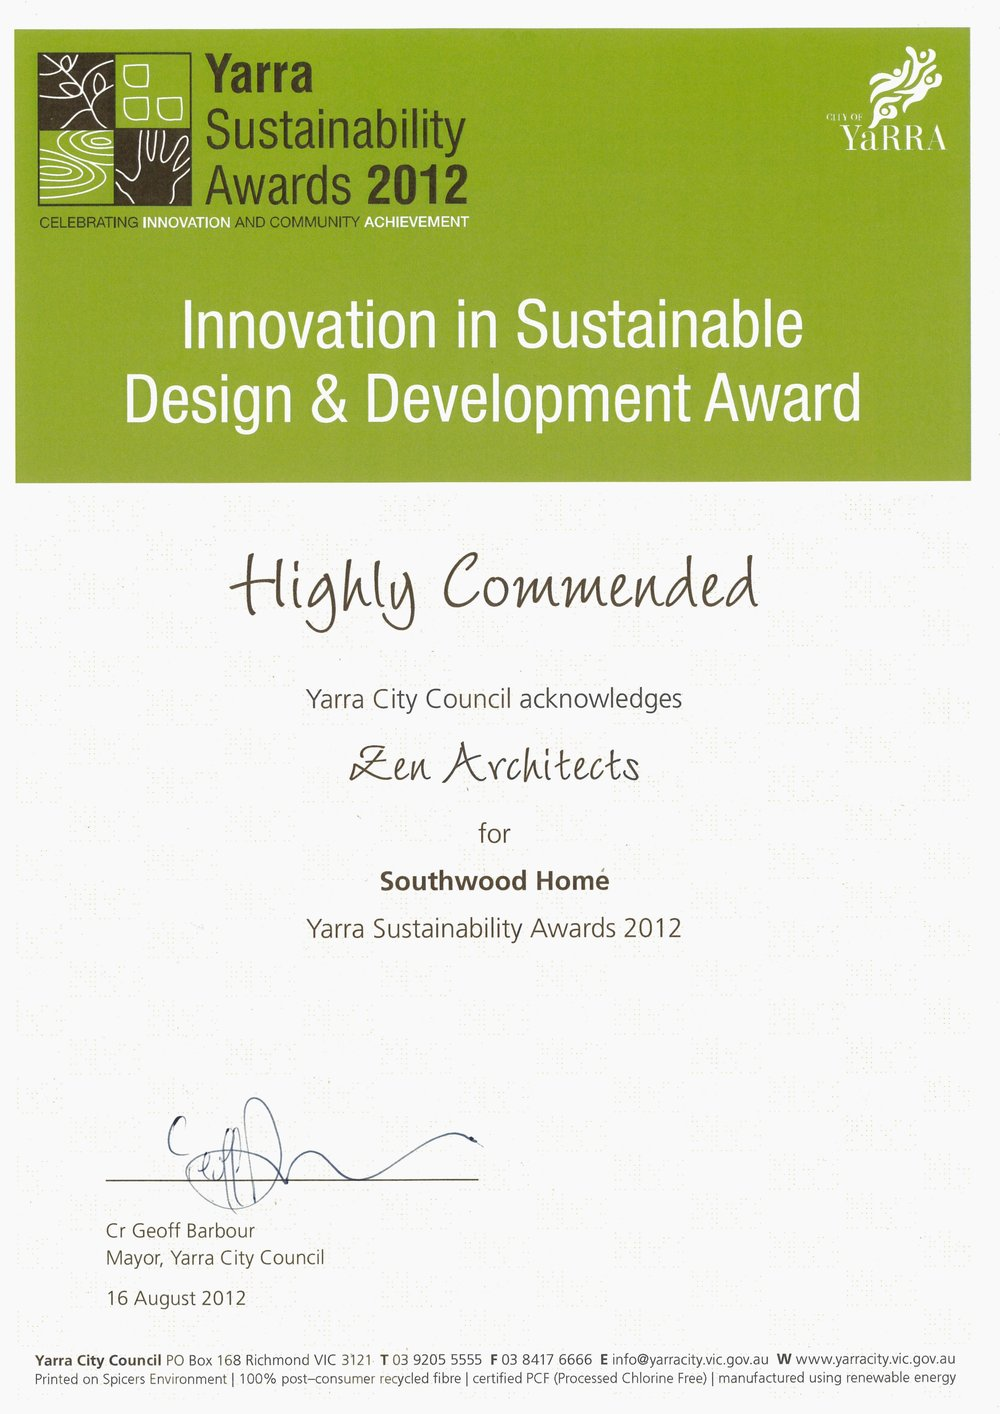 2012_Yarra Sustainability Awards_Highly Commended_Innovation in Sustainable Design & Development_Southwood Home.jpg